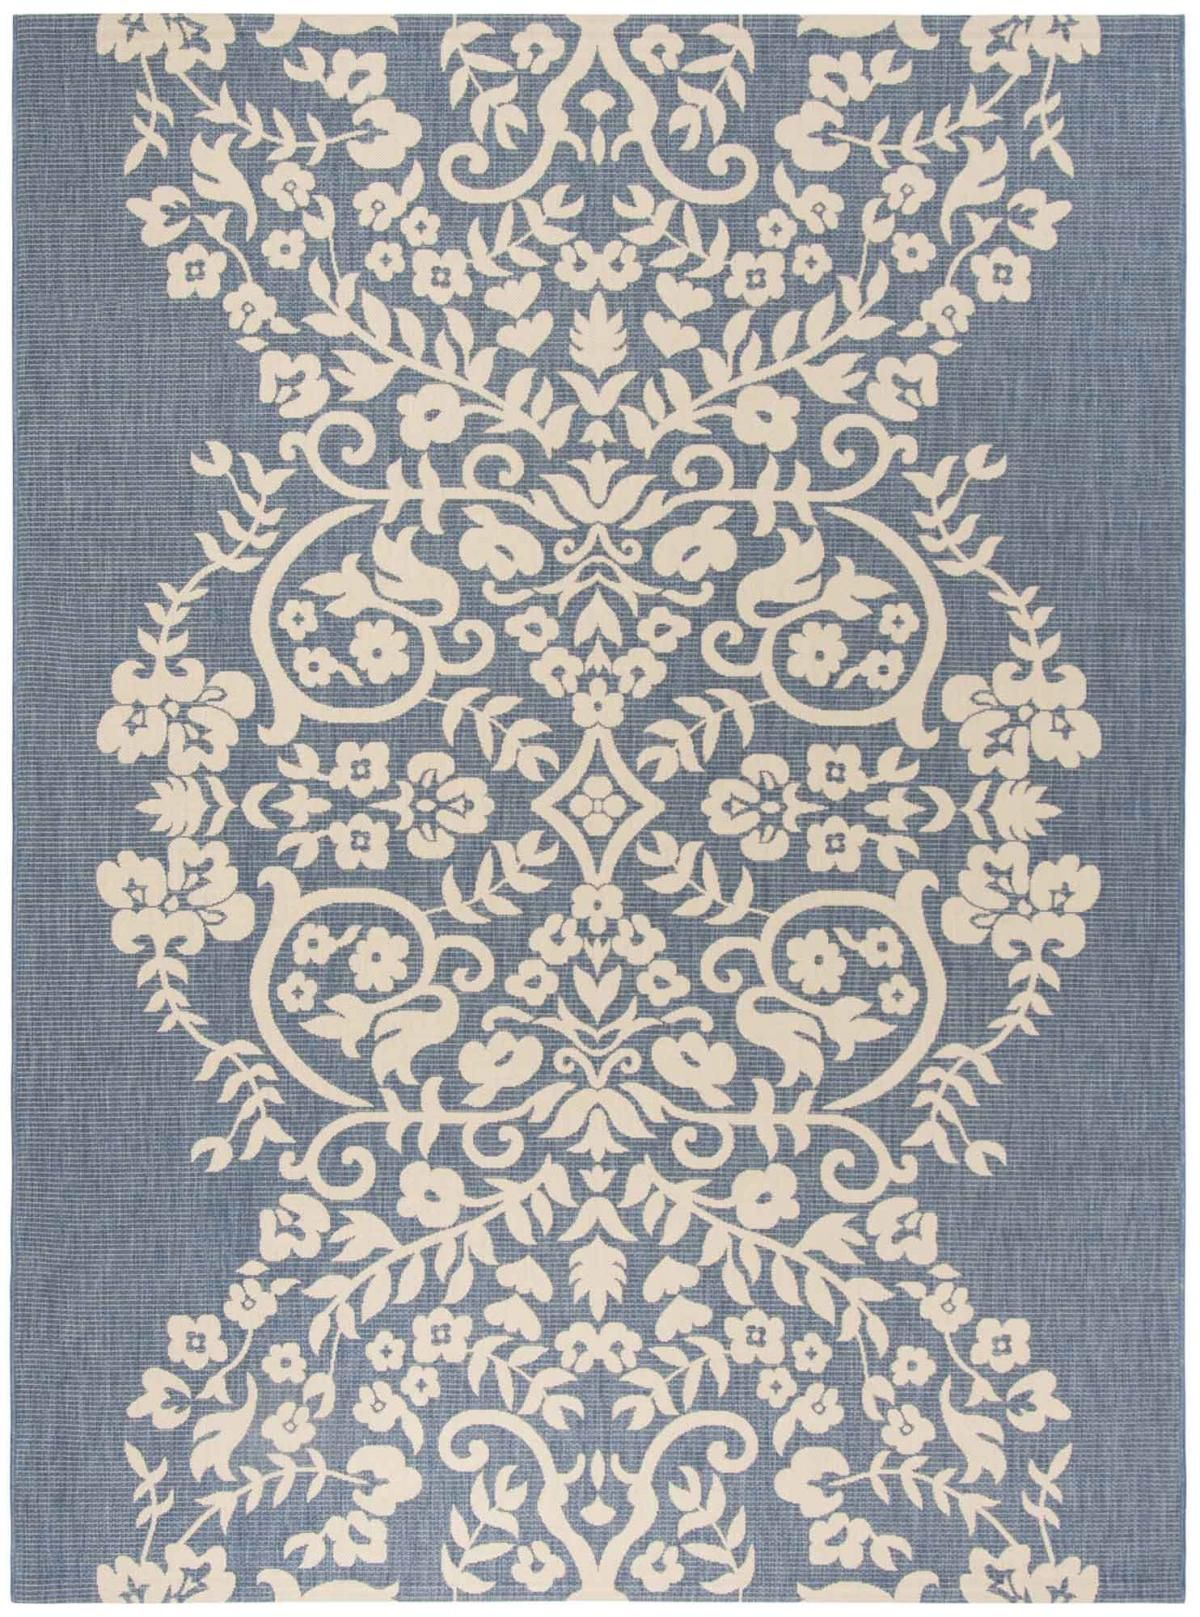 Rug Msr4256 243 Tapestry Martha Stewart Area Rugs By Safavieh Synthetic Rugs Tapestry Colorful Rugs